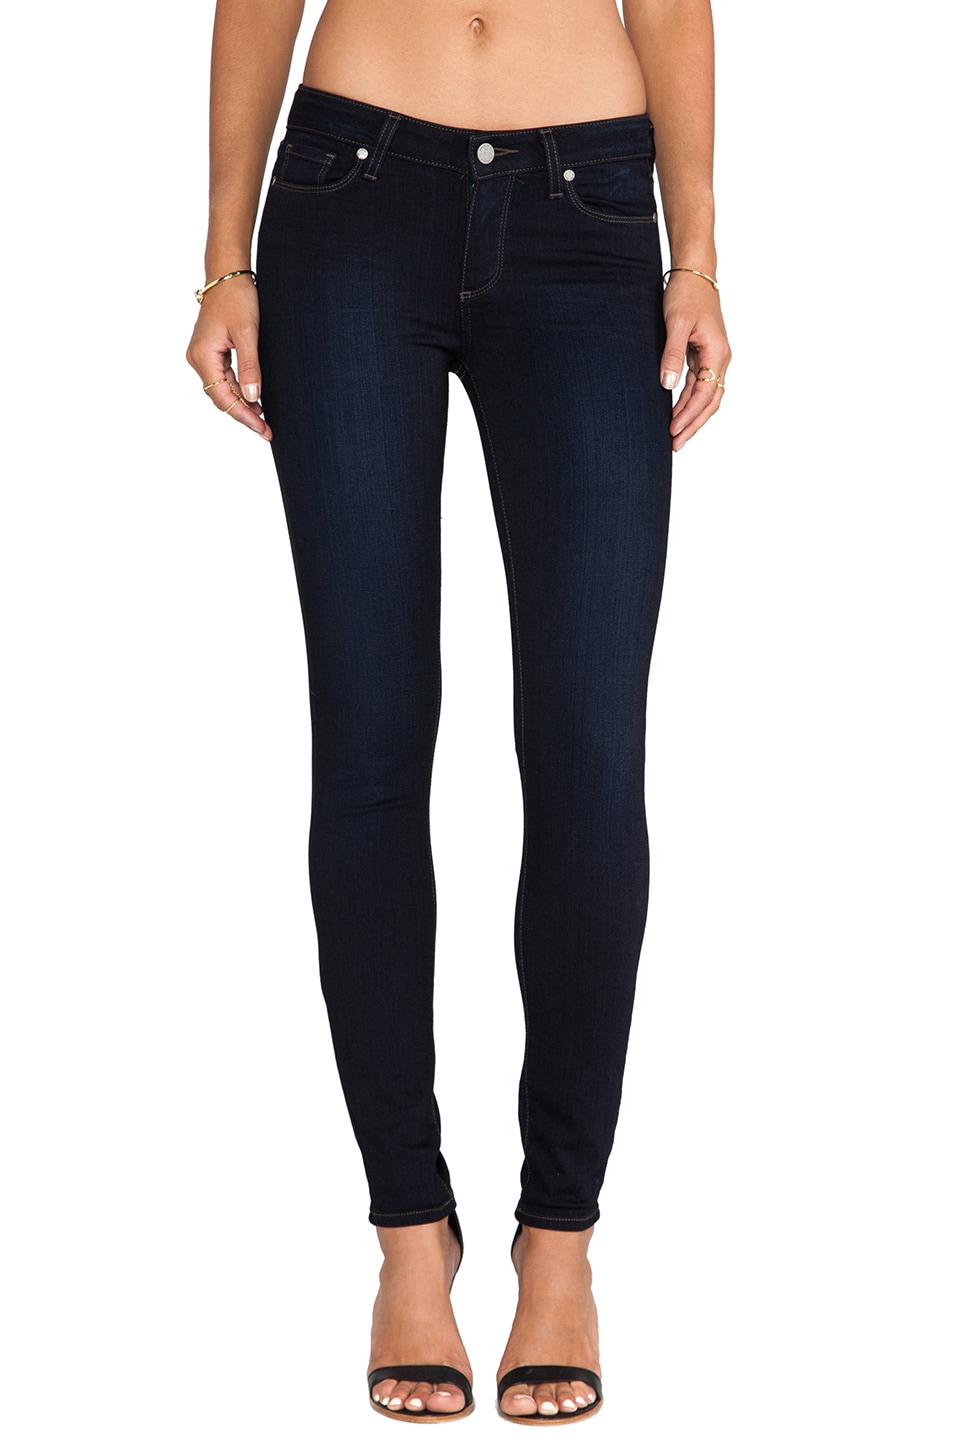 Paige Denim Verdugo Ultra Skinny in Mona